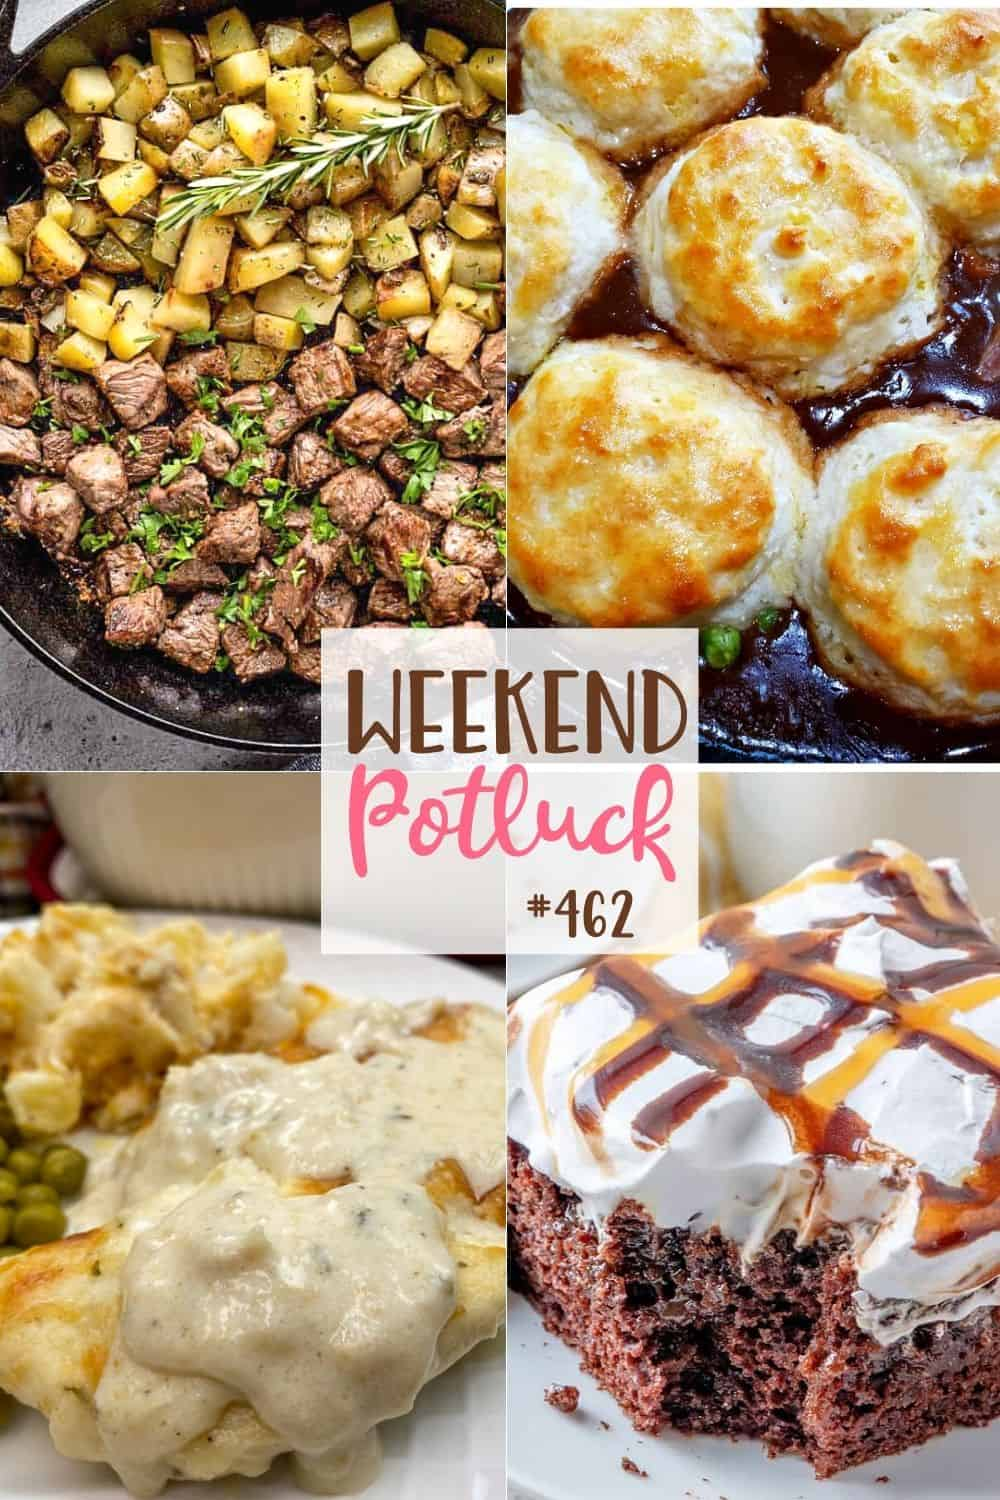 Weekend Potluck recipes include: Steak Bites and Potatoes, Biscuit Topped Beef Pot Pie, Baked Chicken and Ranch Dinner and Snickers Poke Cake